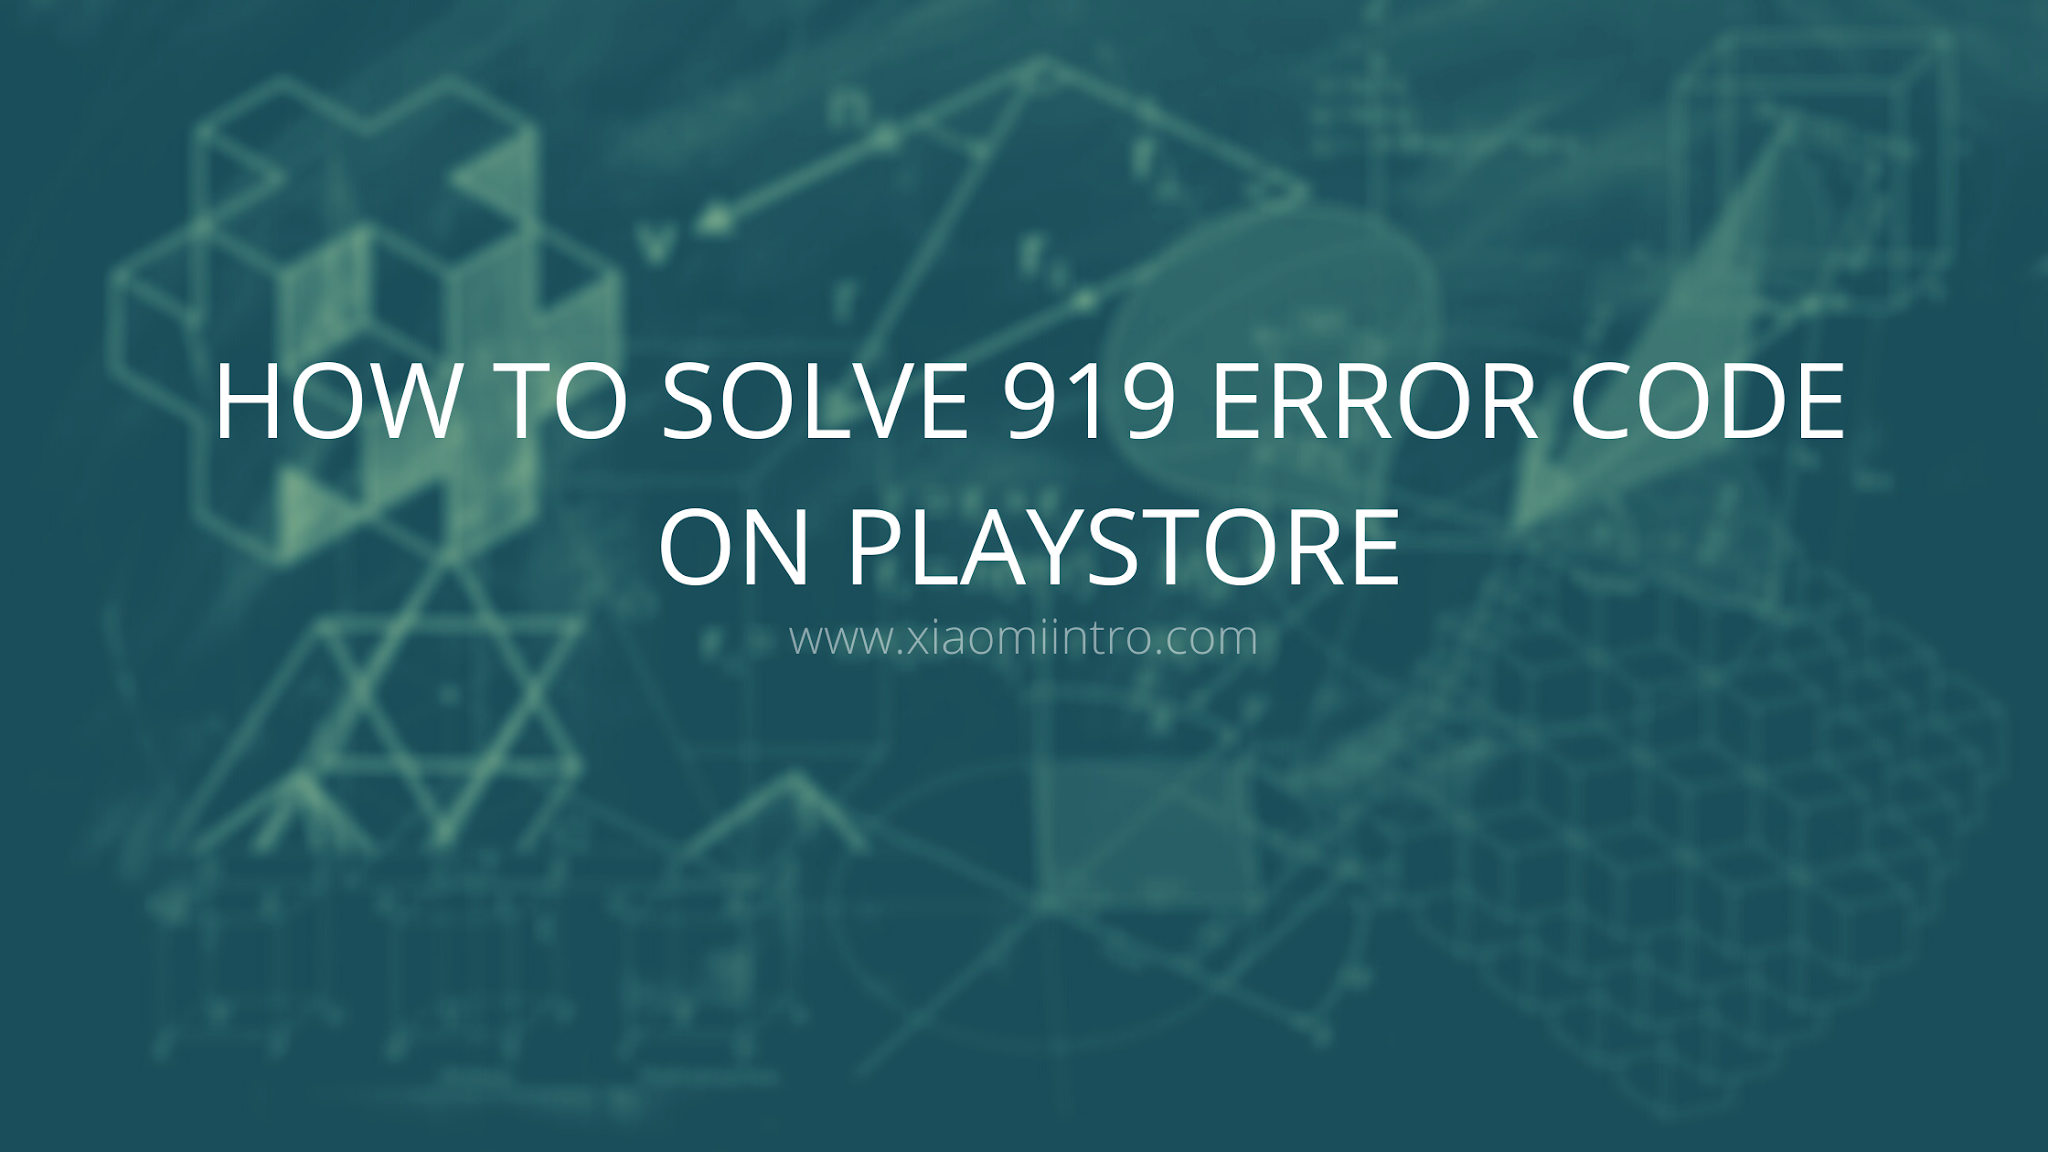 How To Solve Error Code 919 On Android Playstore